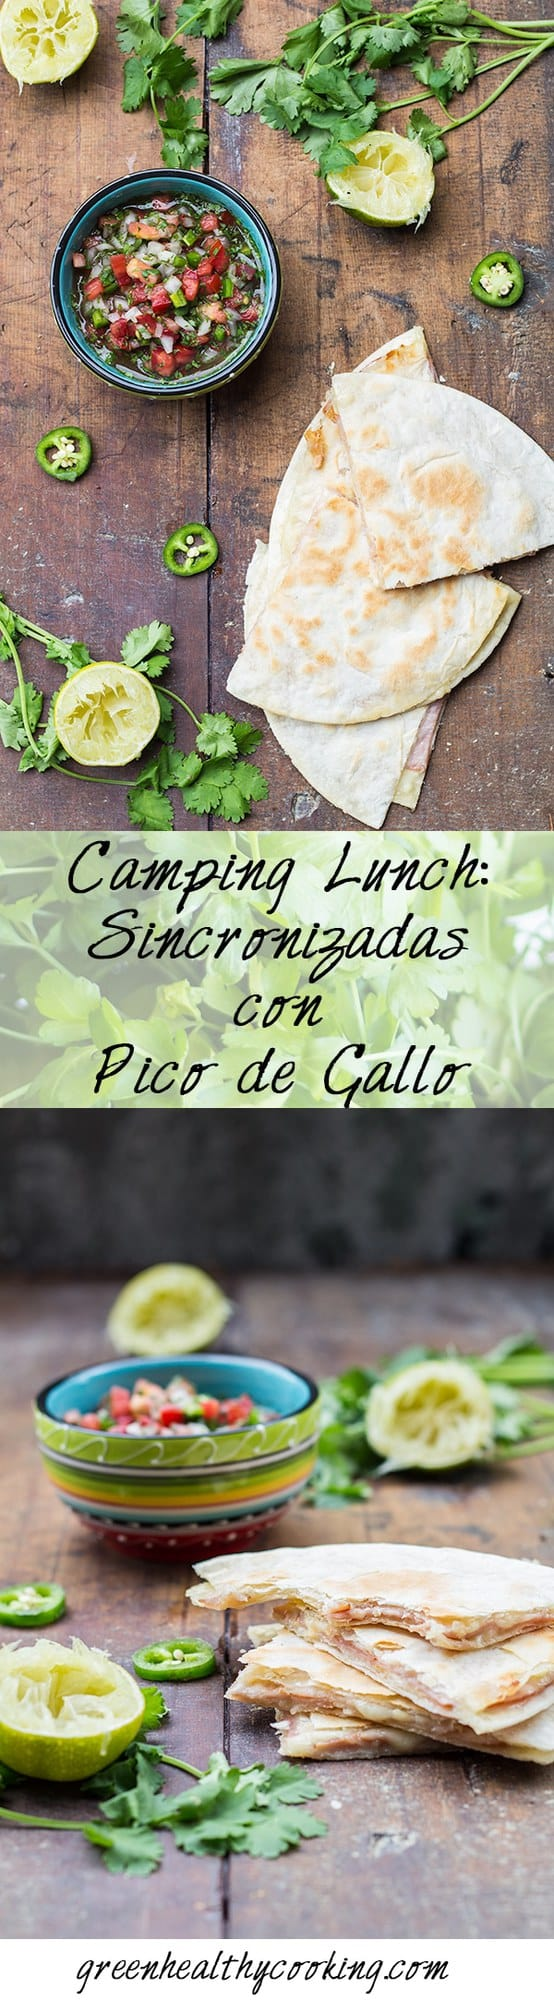 Collage of Sincronizadas con Pico de Gallo images with text overlay for Pinterest.